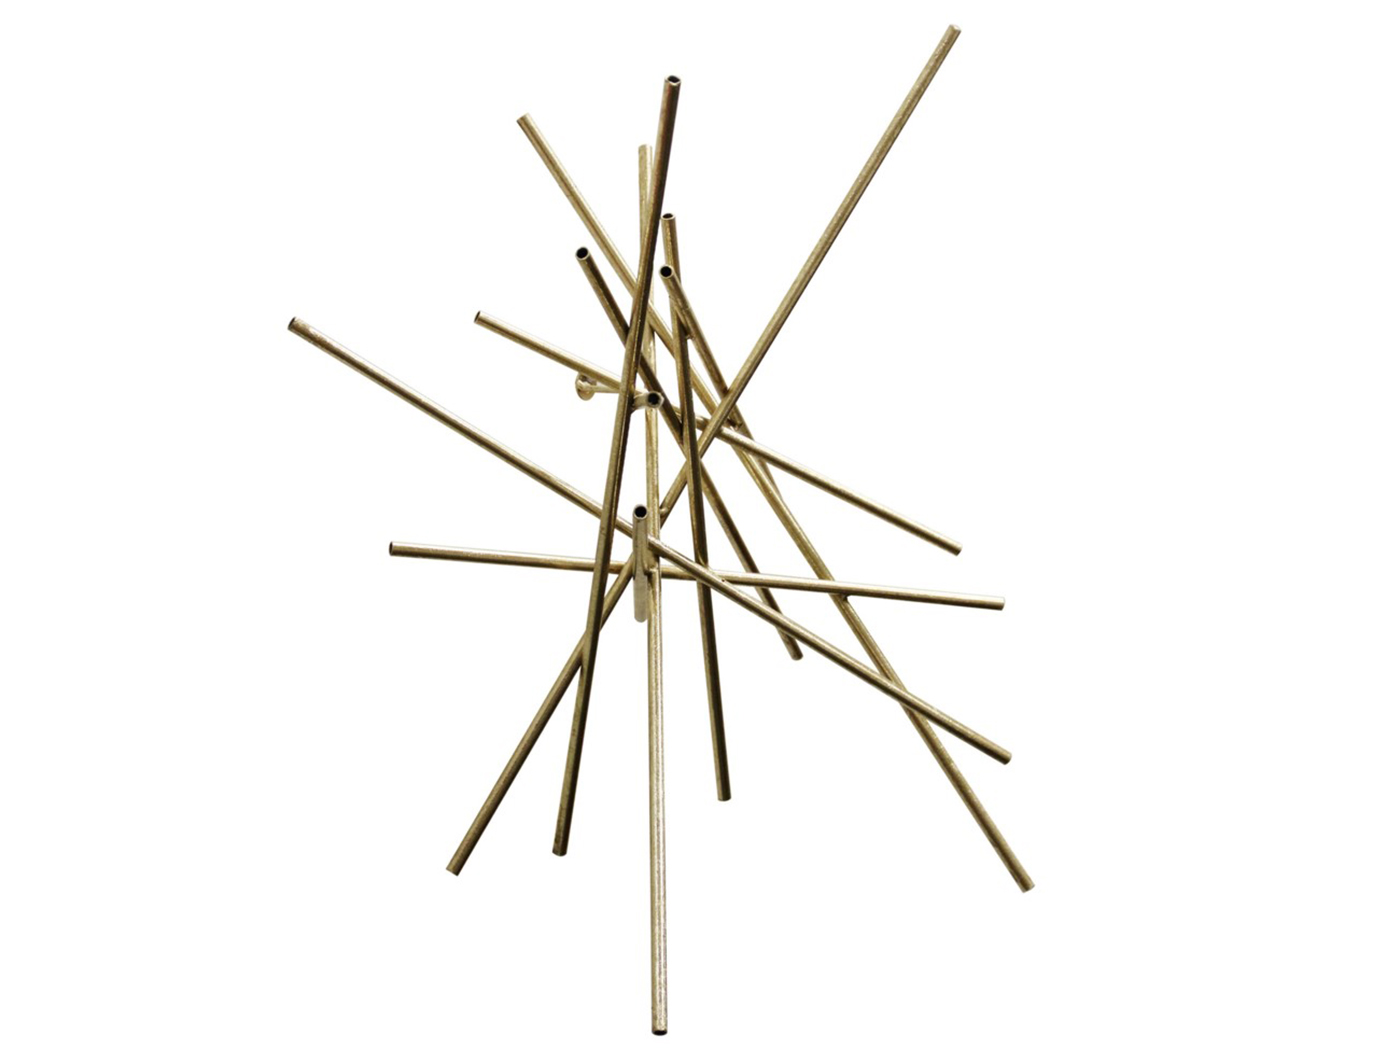 "Gold Metal Sticks Wall Decor 24""W x 24""H"